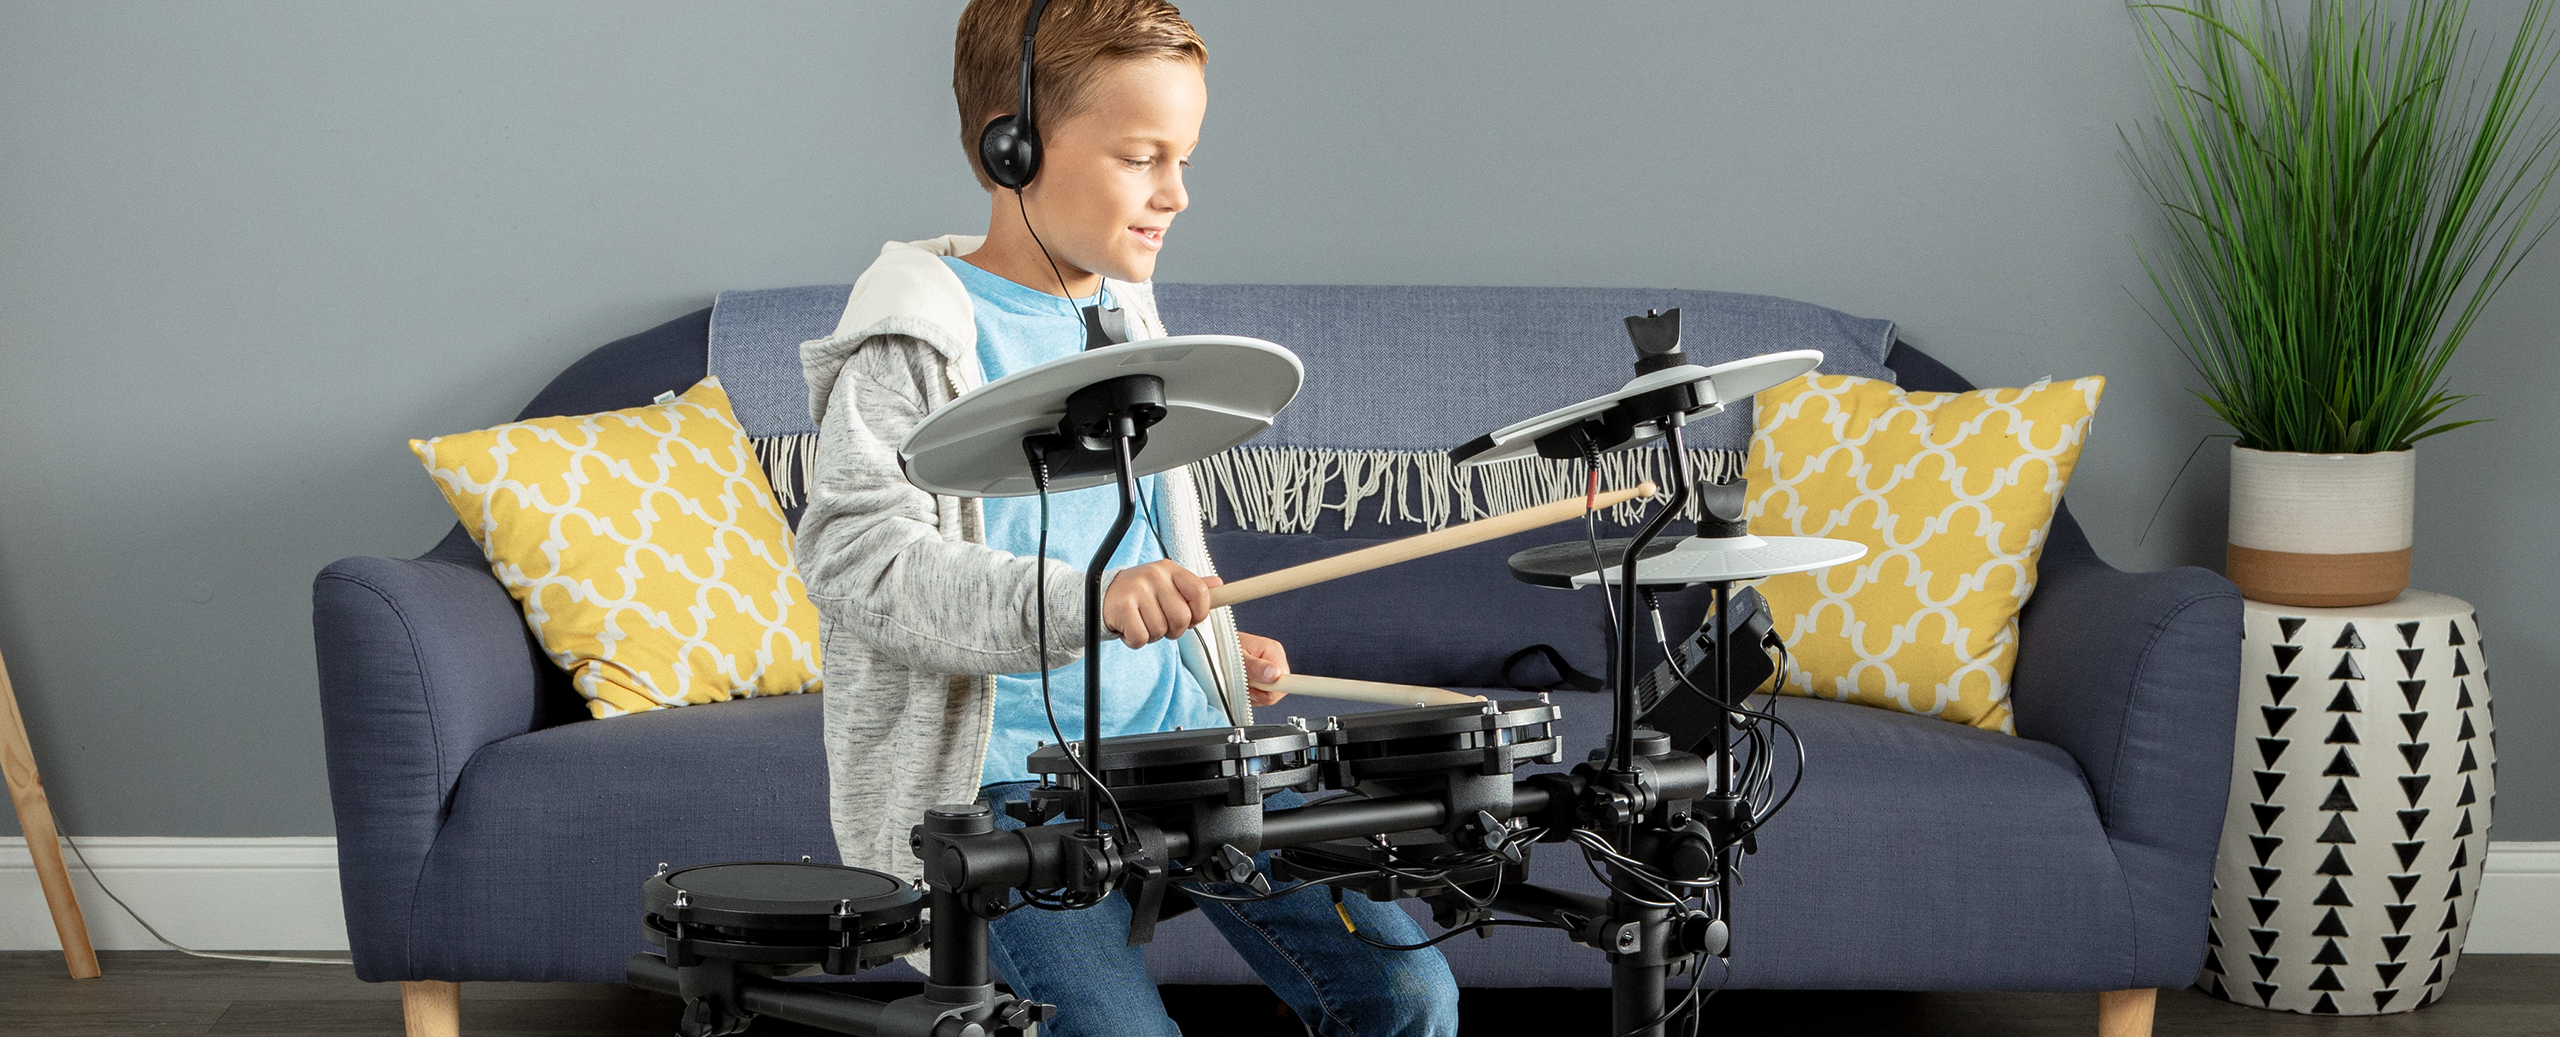 Start Your Drumming Journey – The Alesis Debut Kit